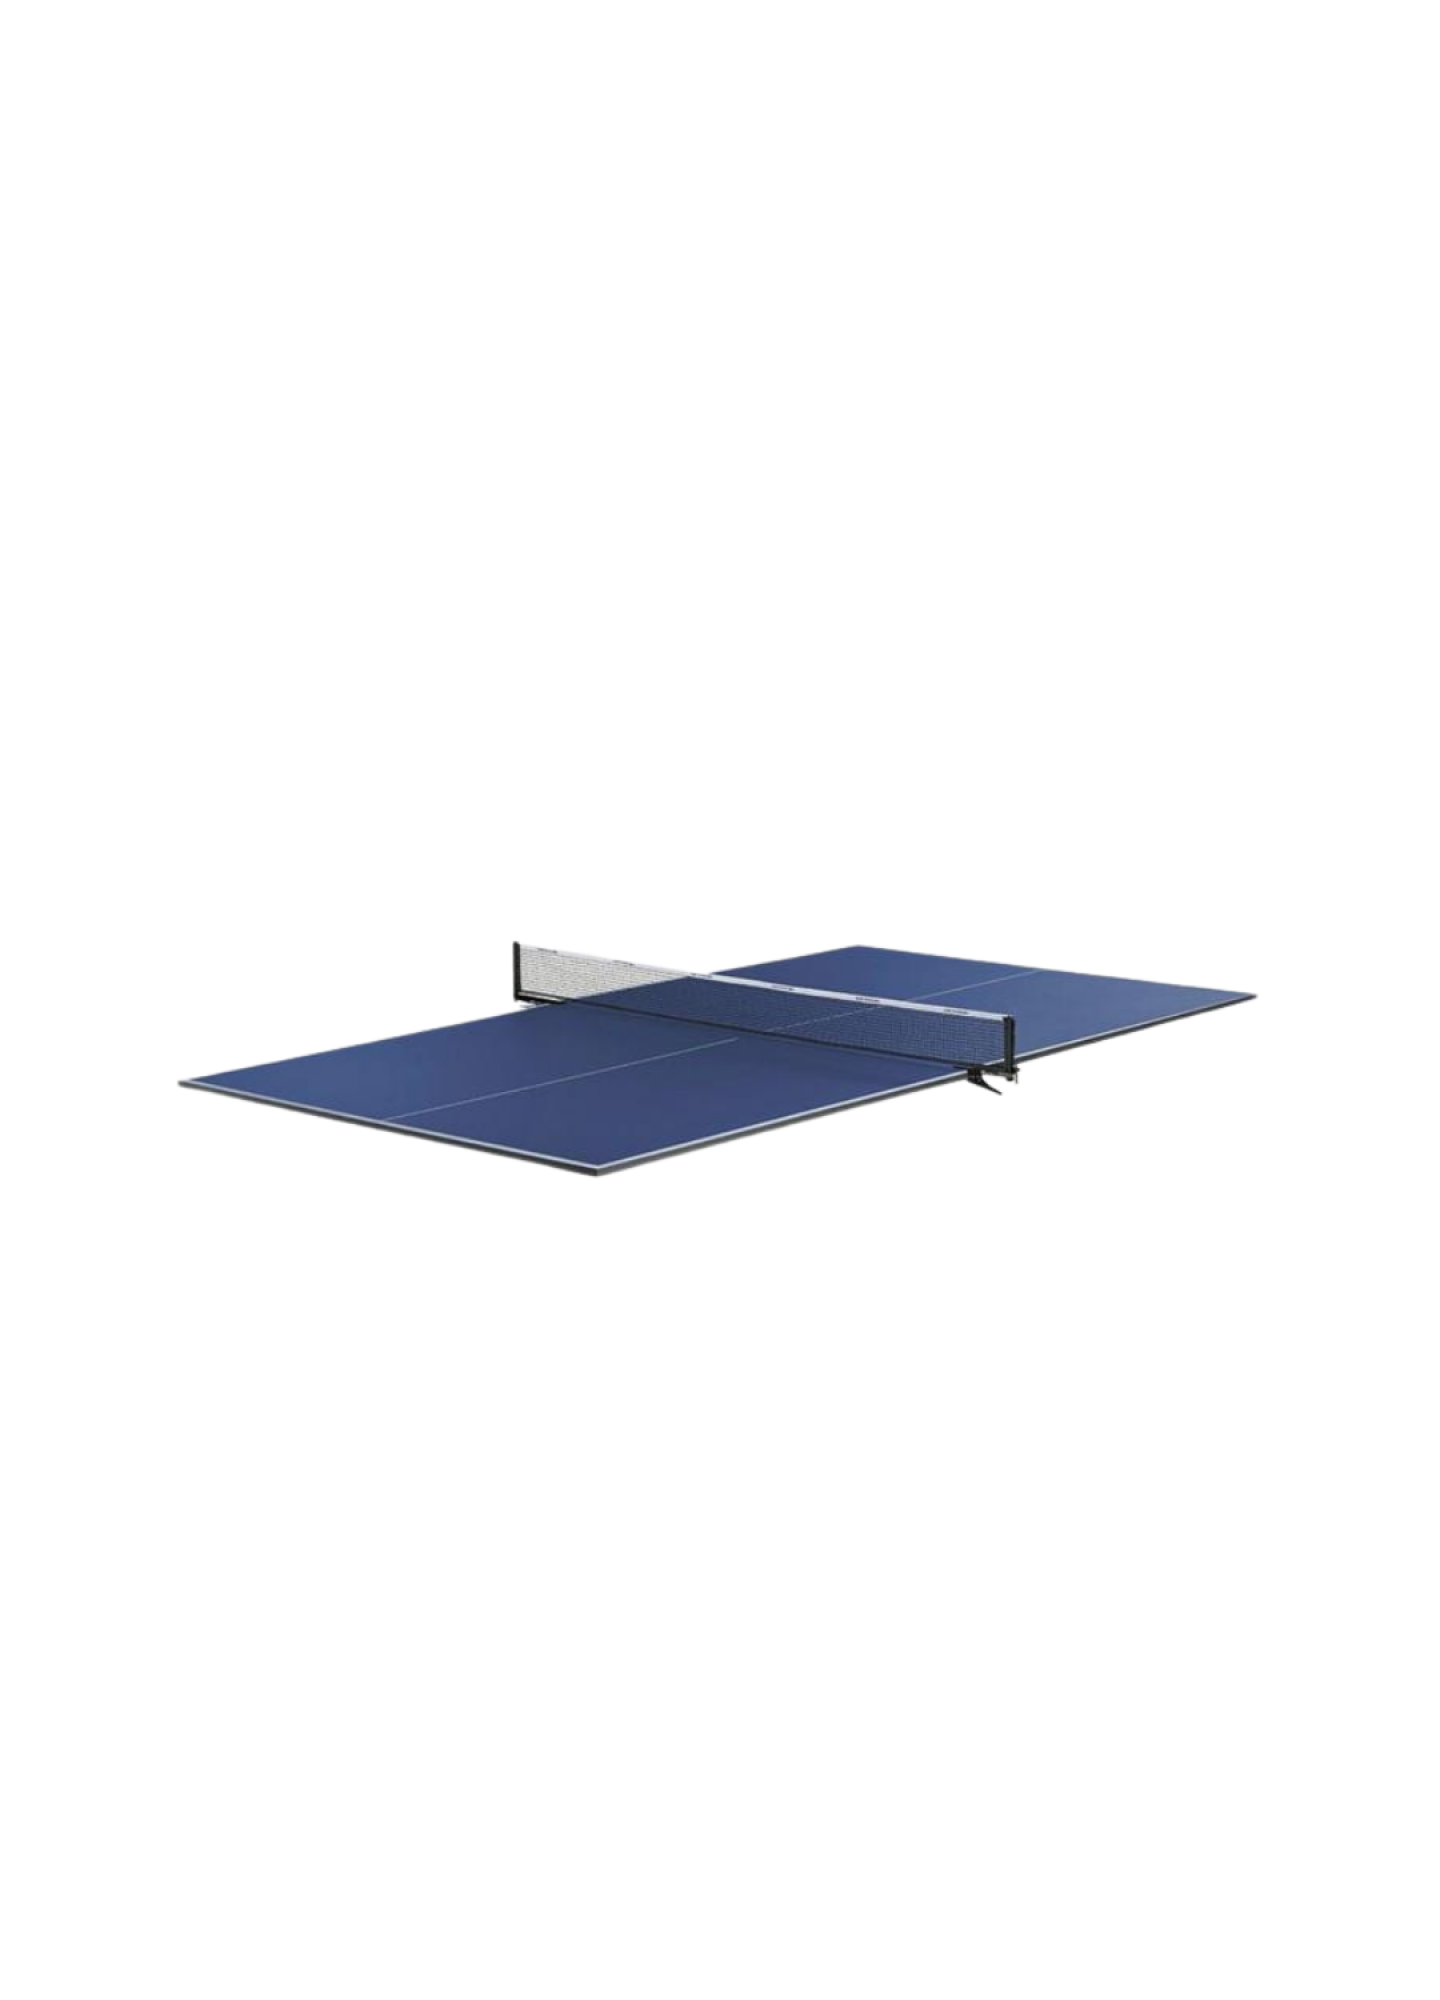 TABLE TENNIS TABLE CONVERSION TOPS (PUT ON YOUR POOL TABLE)